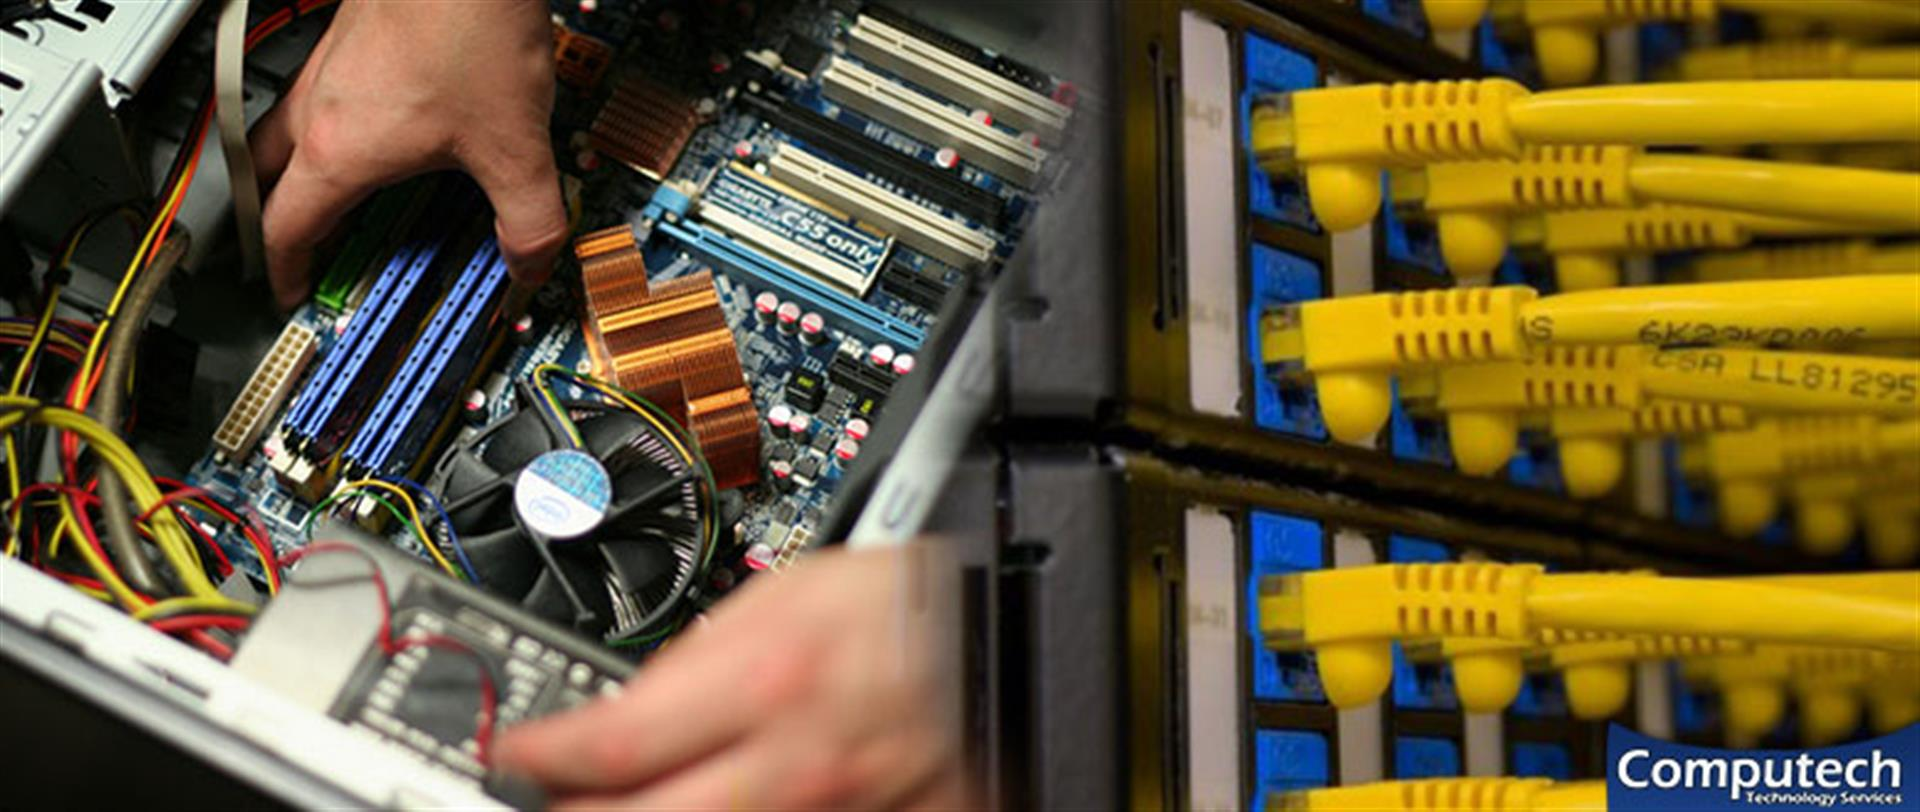 Manchester Tennessee Onsite PC and Printer Repairs, Networks, Voice & Data Cabling Services